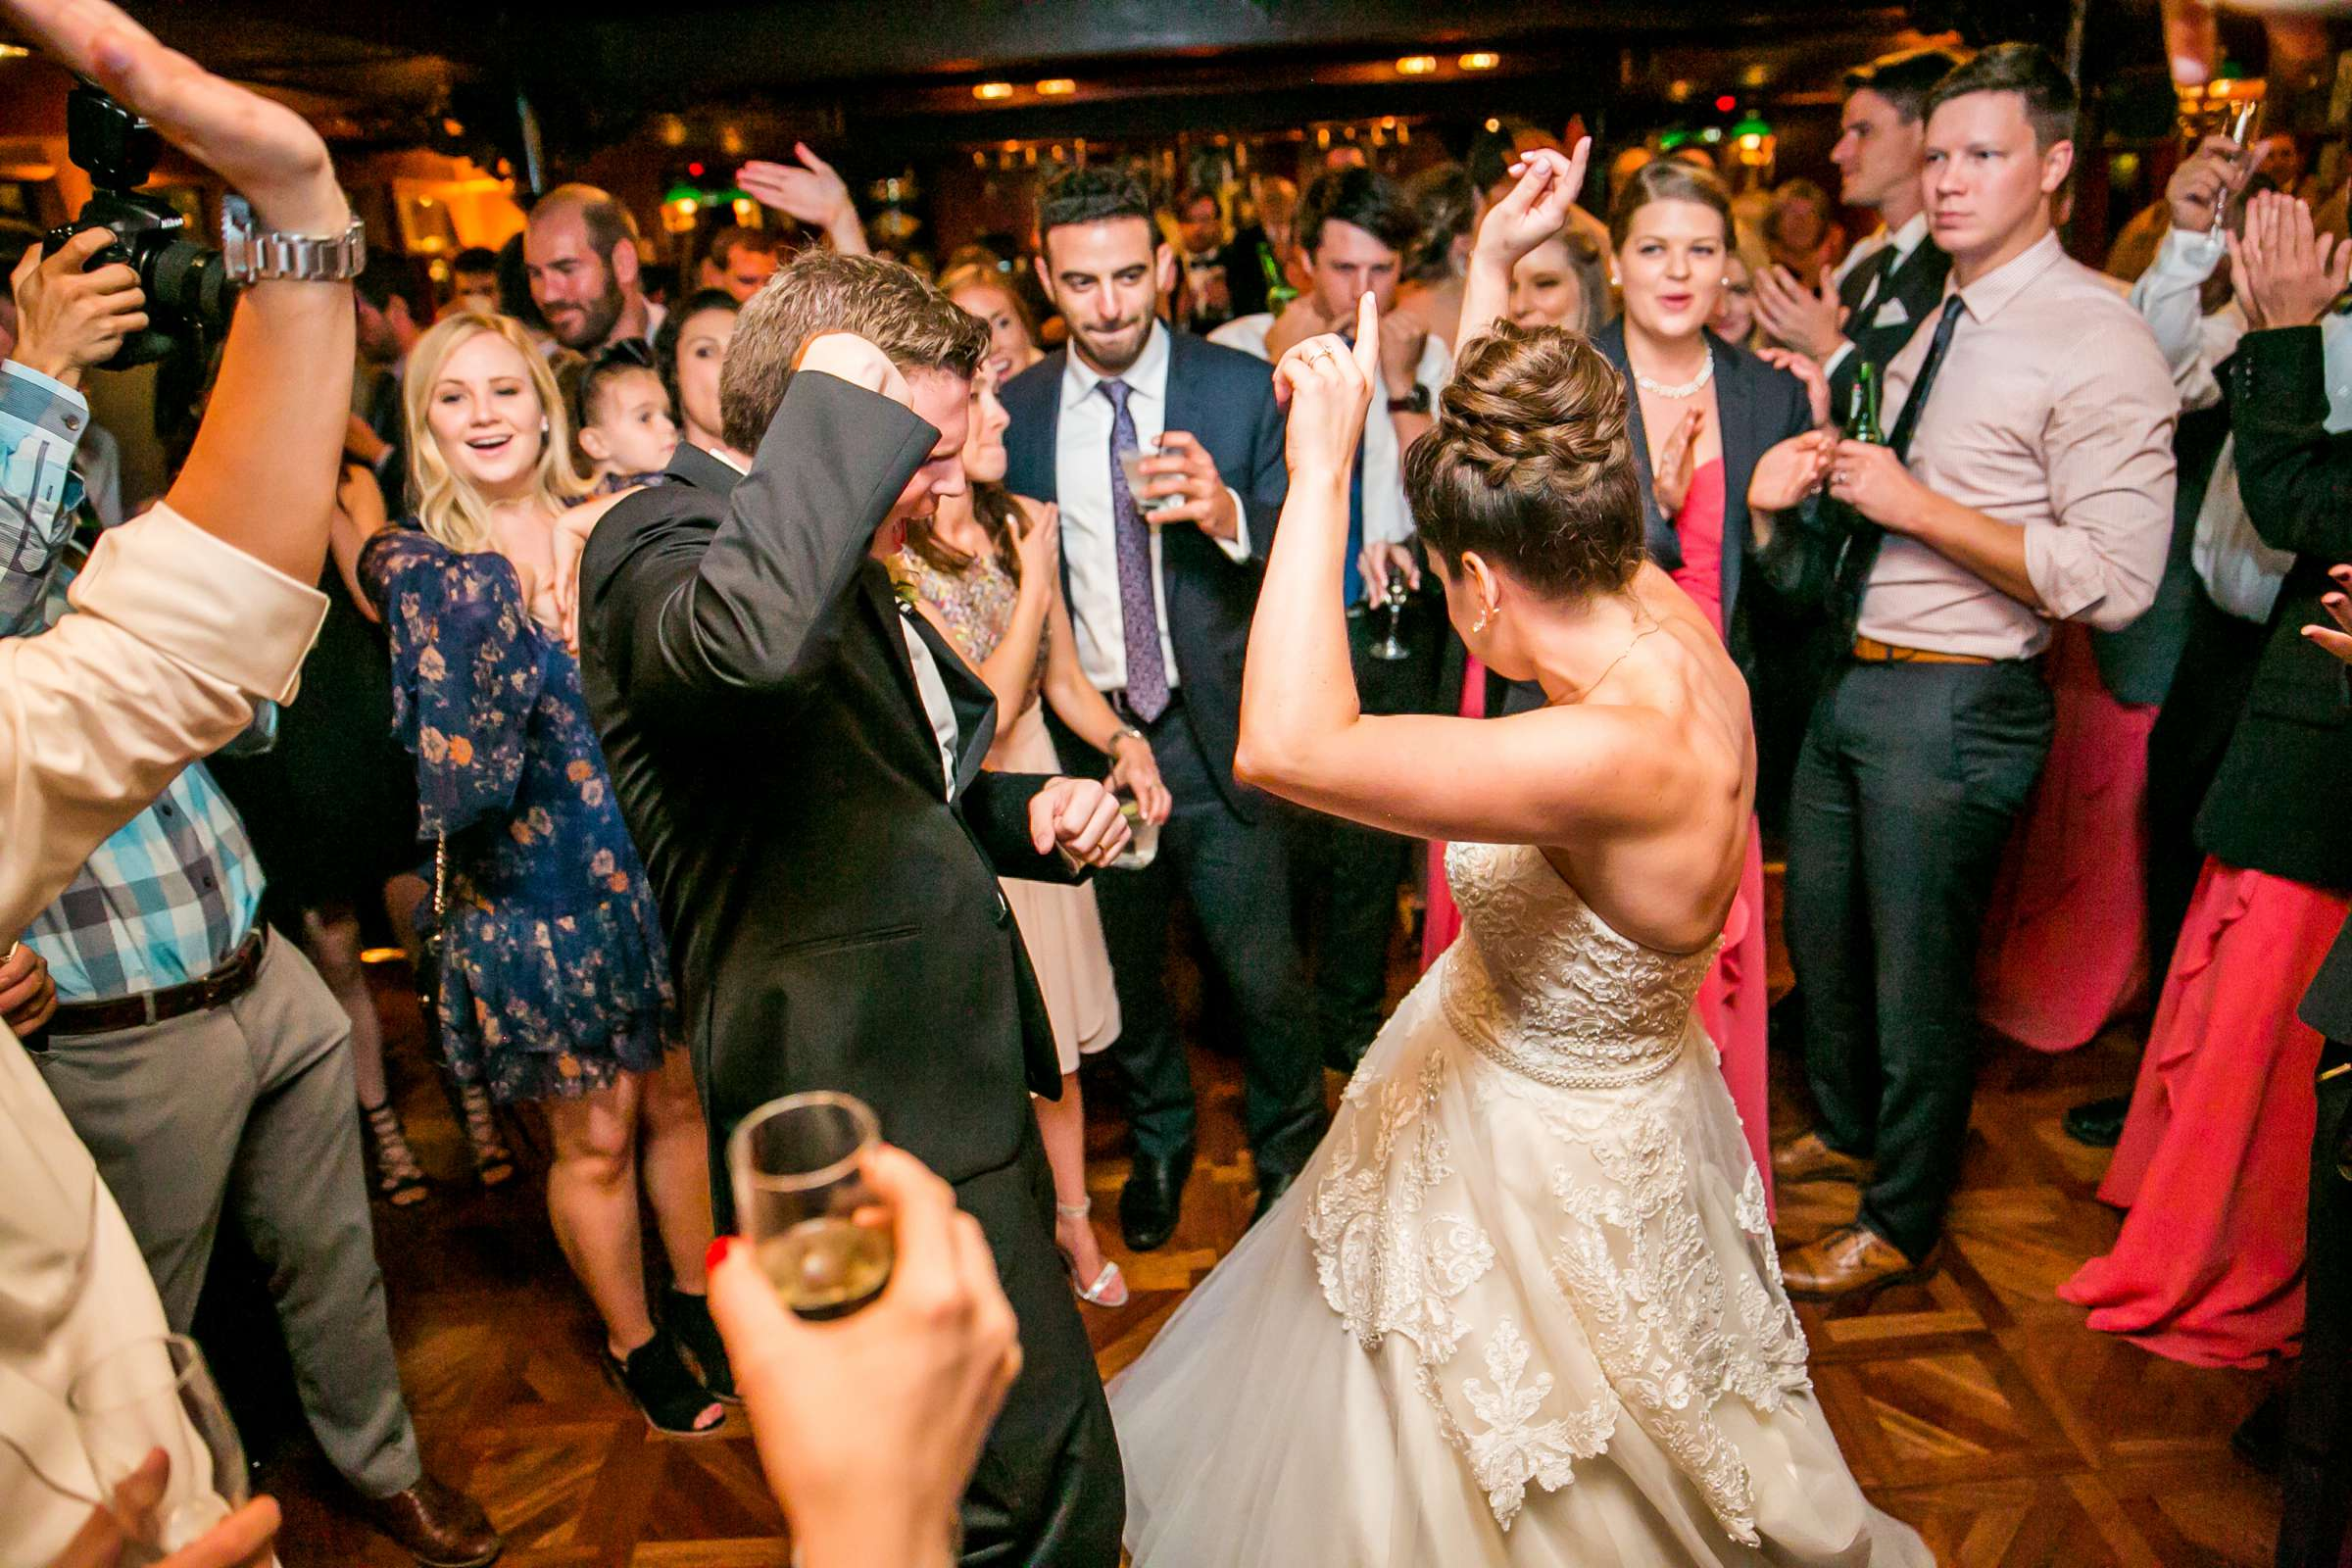 Bahia Hotel Wedding coordinated by I Do Weddings, Meredith and Jack Wedding Photo #87 by True Photography